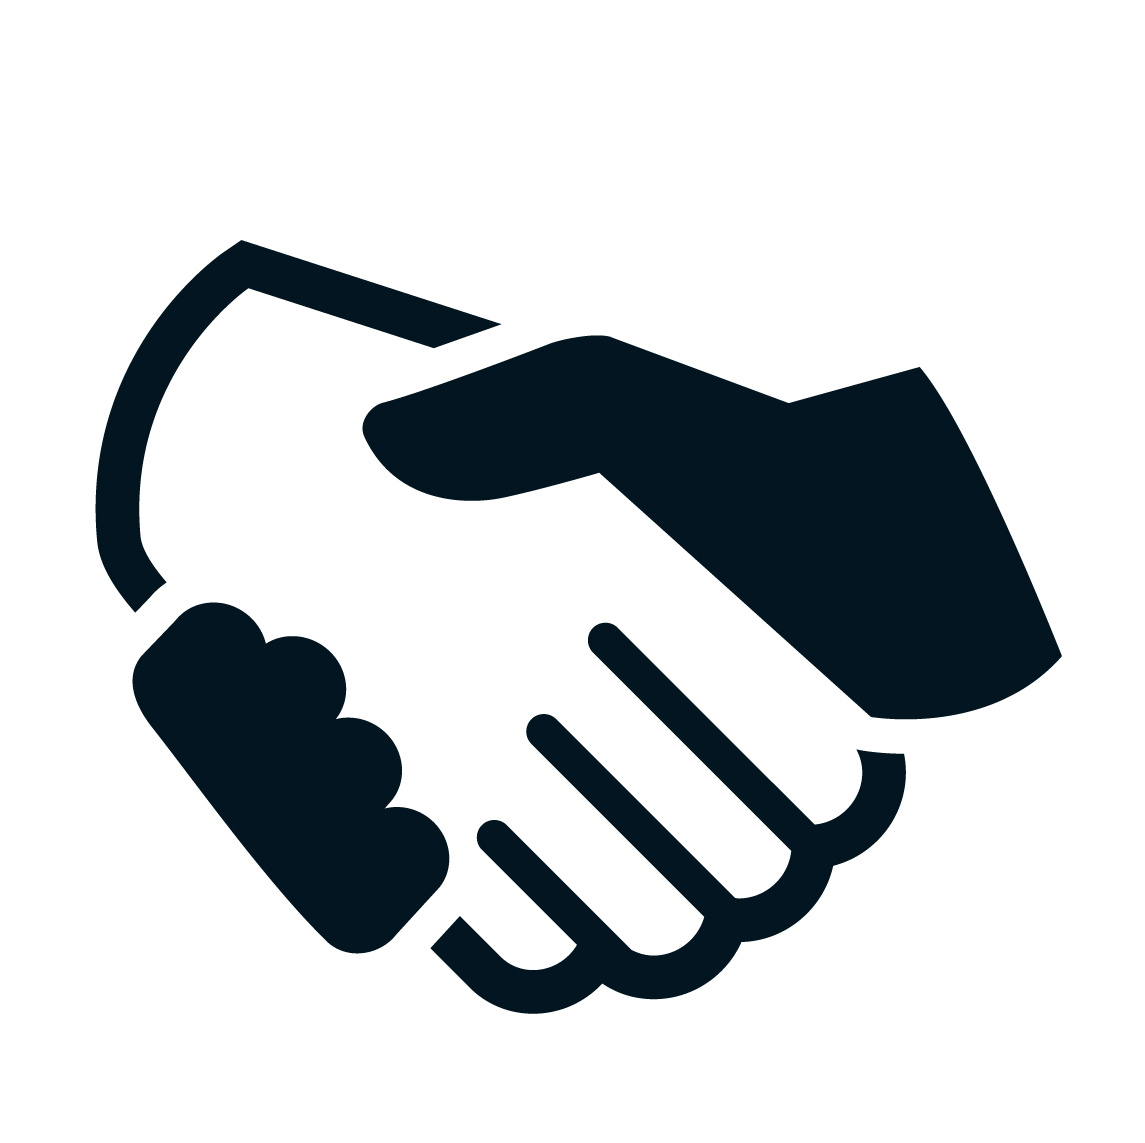 Handshake clipart alliance. Example for the icon